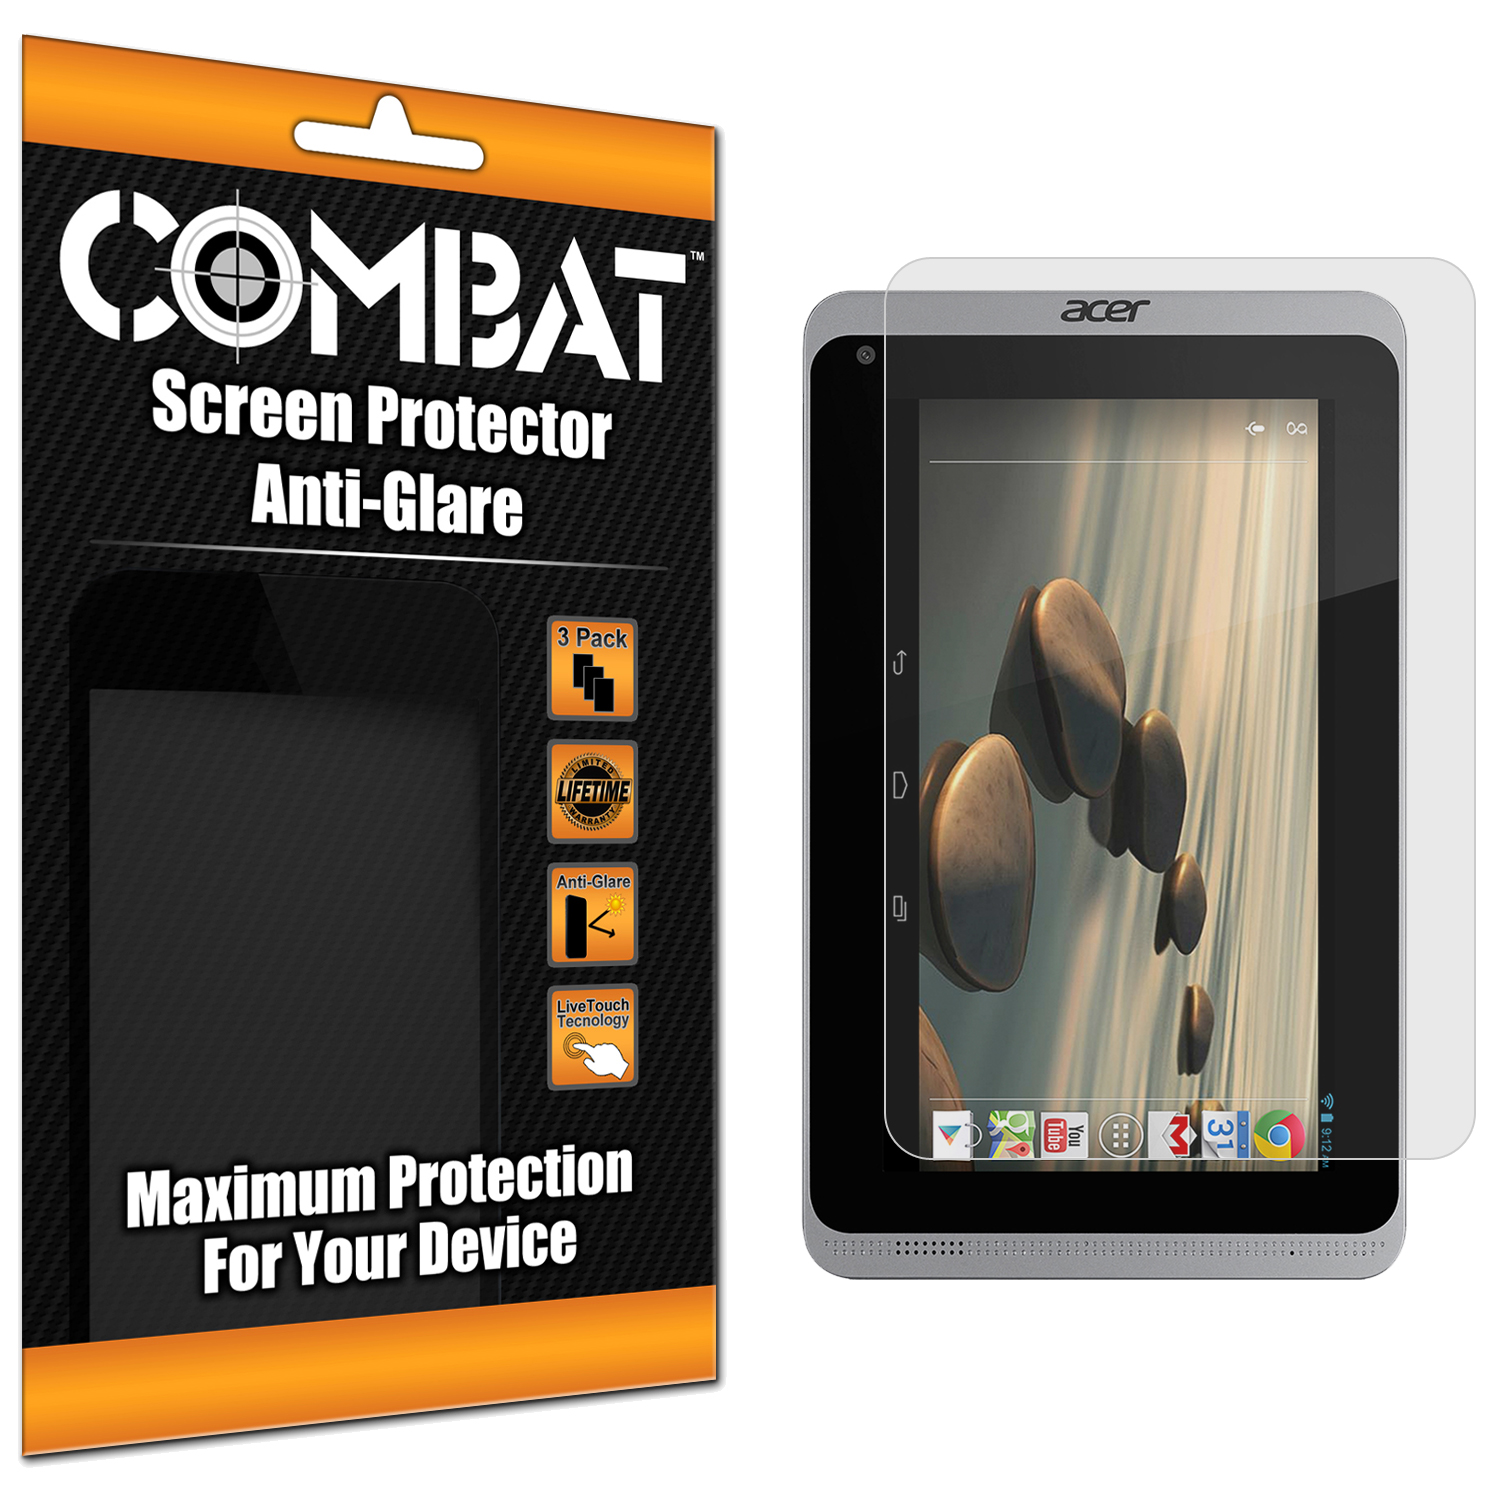 Acer Iconia B1-720 Combat 3 Pack Anti-Glare Matte Screen Protector